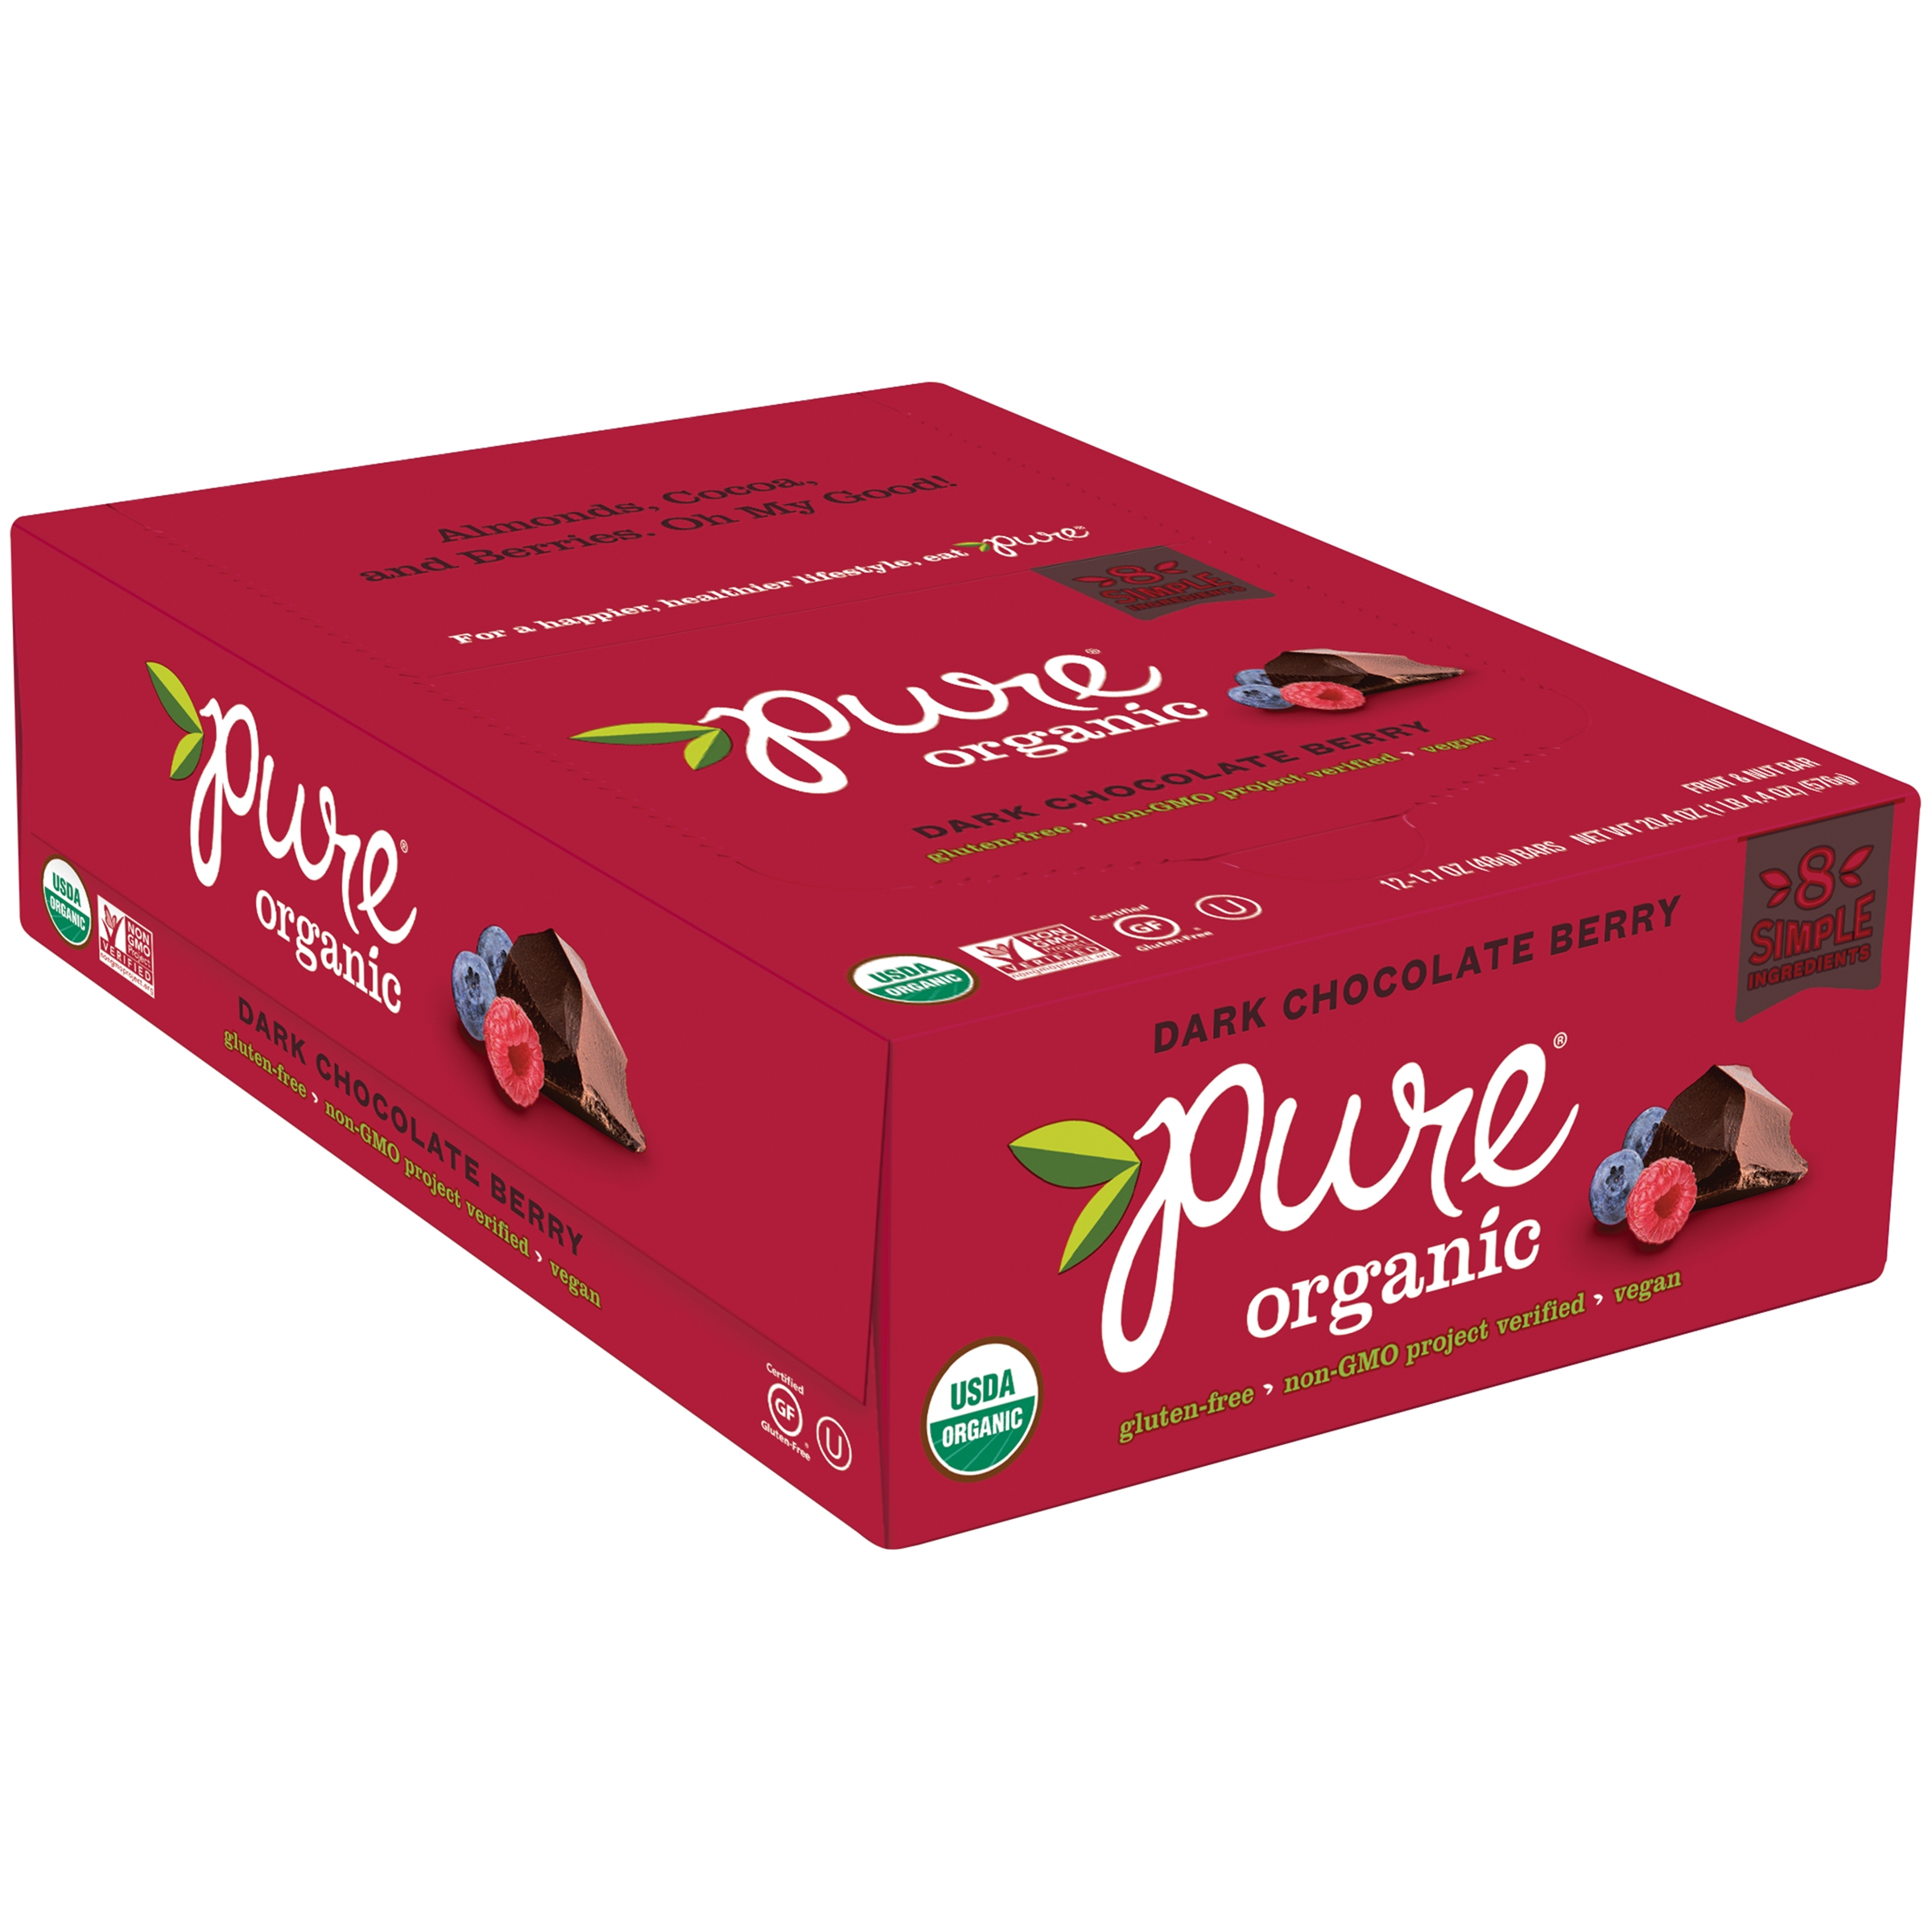 Pure® Organic Dark Chocolate Berry Fruit & Nut Bars 12 ct Box